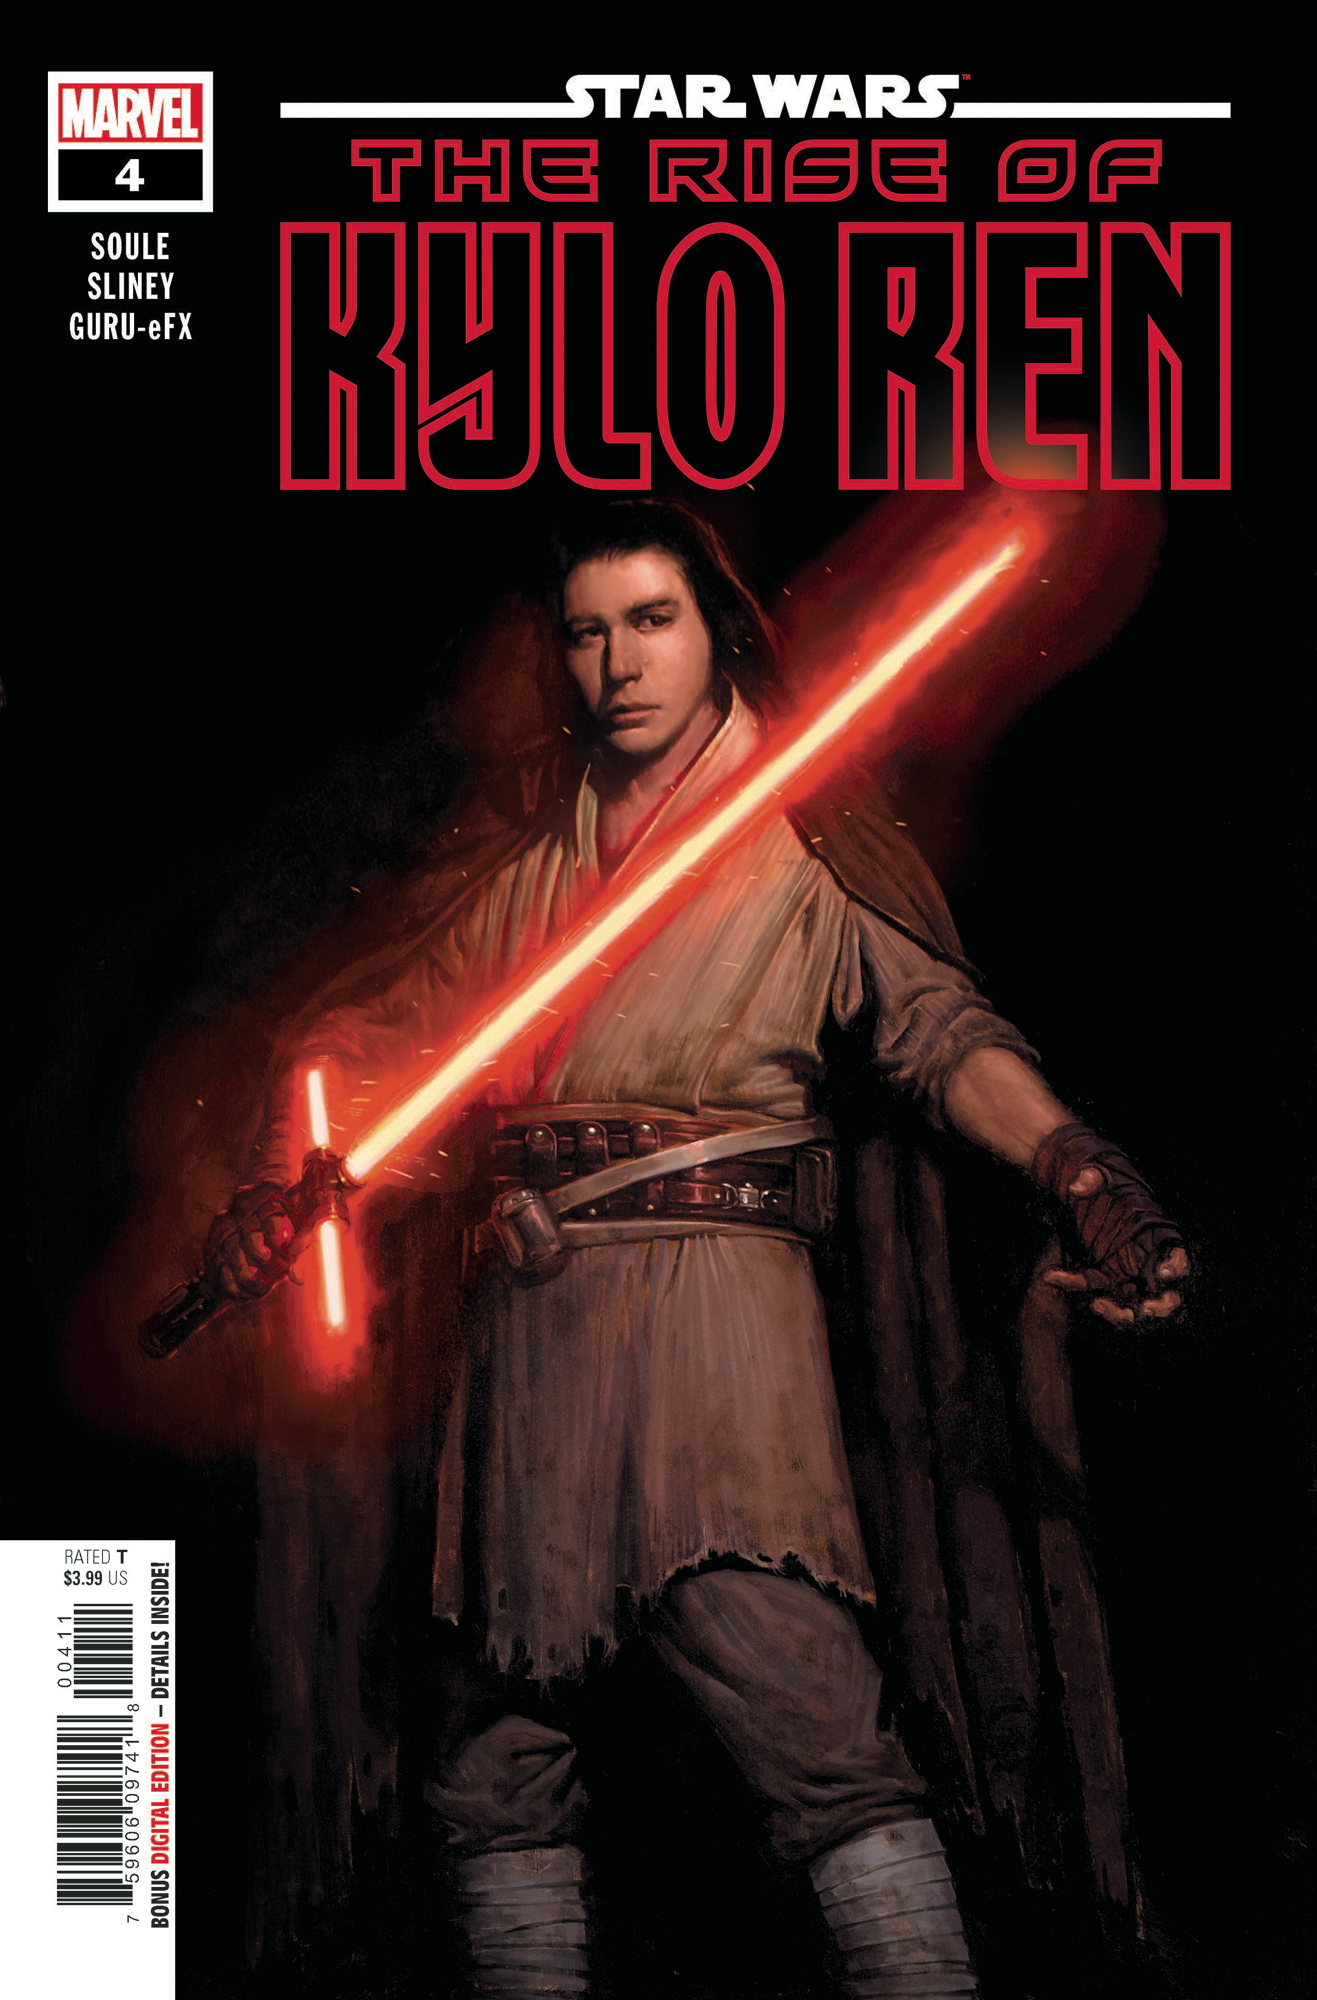 The Rise of Kylo Ren #4 (11.03.2020)